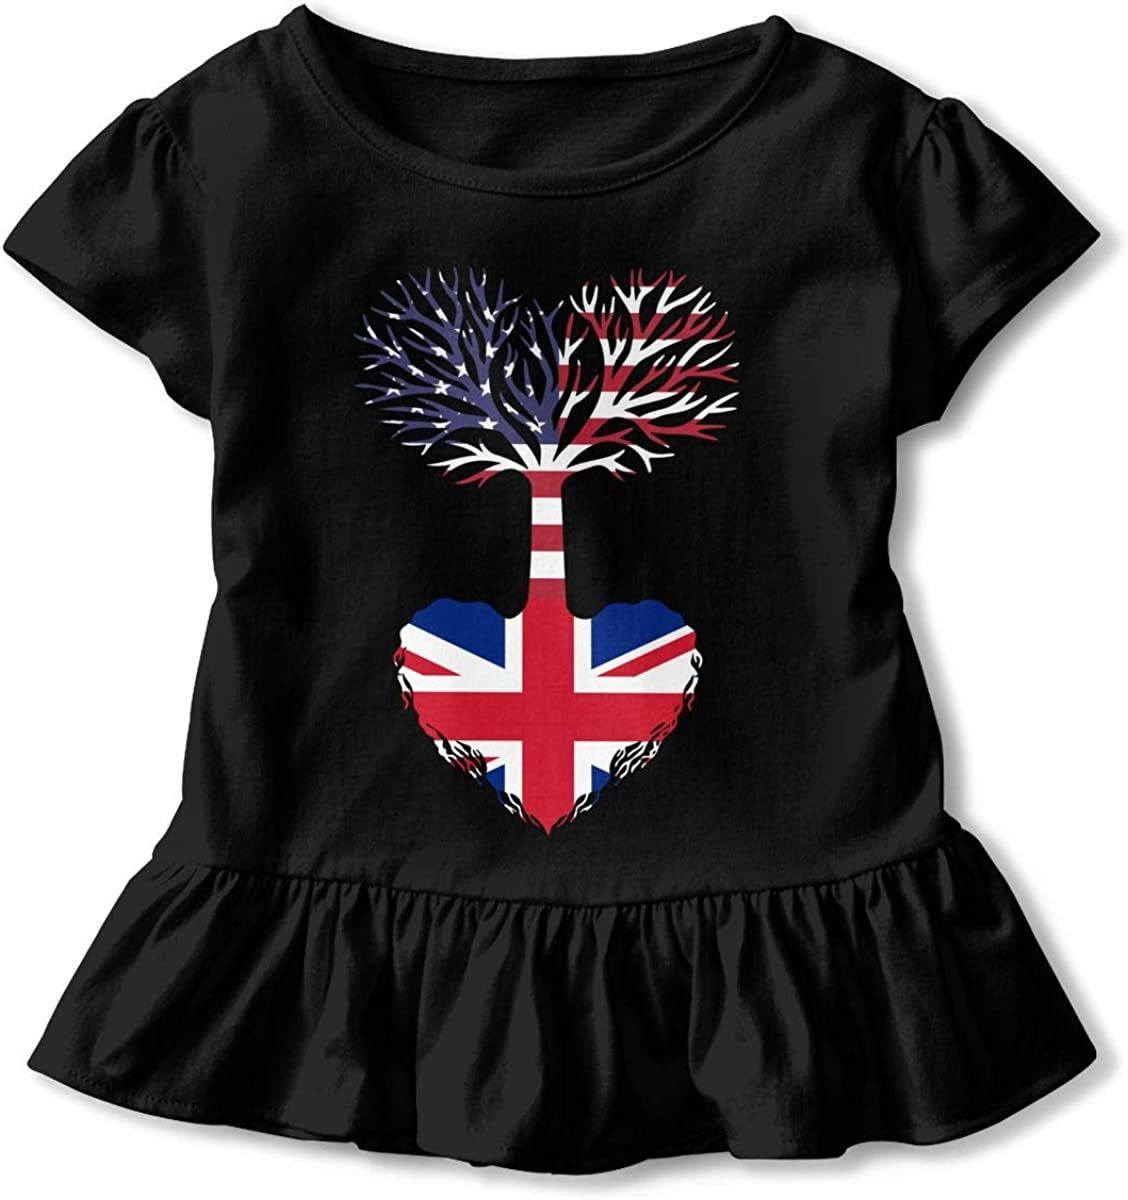 TRR8S//1 American Grown British Root Funny Ruffle Cotton Short Sleeve Graphic for Little Girls Gift